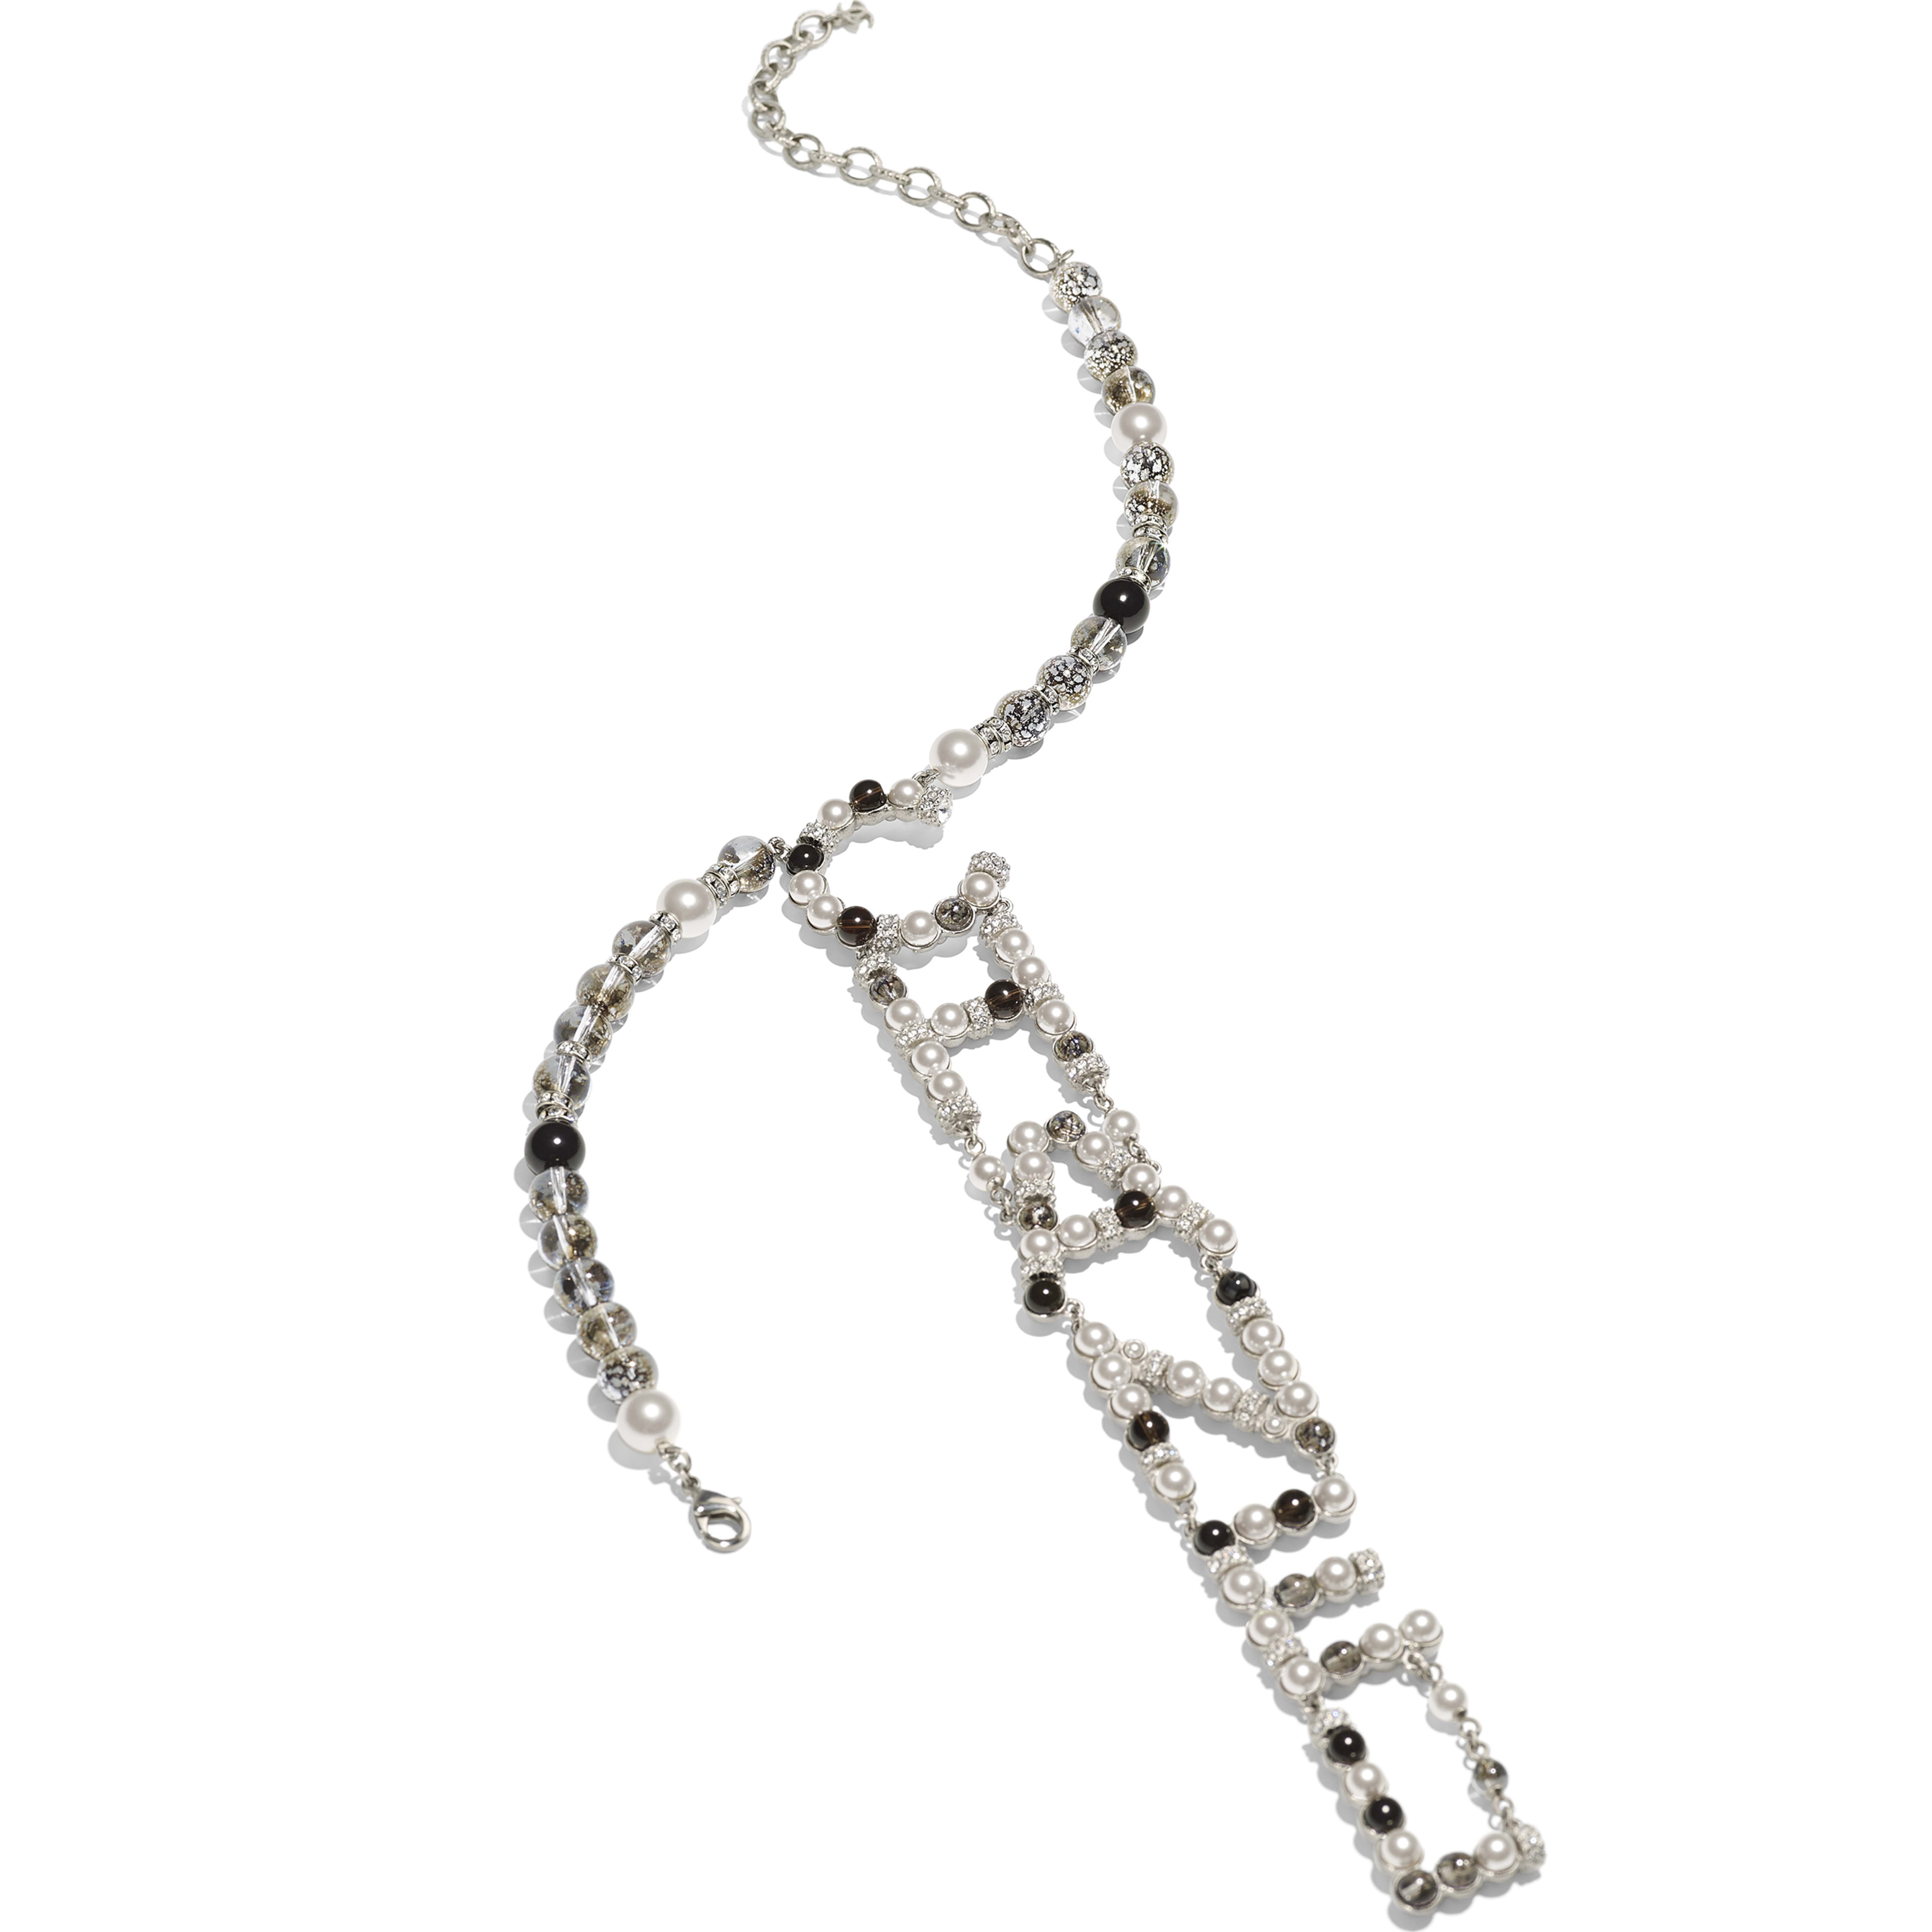 Necklace - Silver, Pearly White, Black & Crystal - Metal, Natural Stones, Glass Pearls & Strass - Alternative view - see full sized version